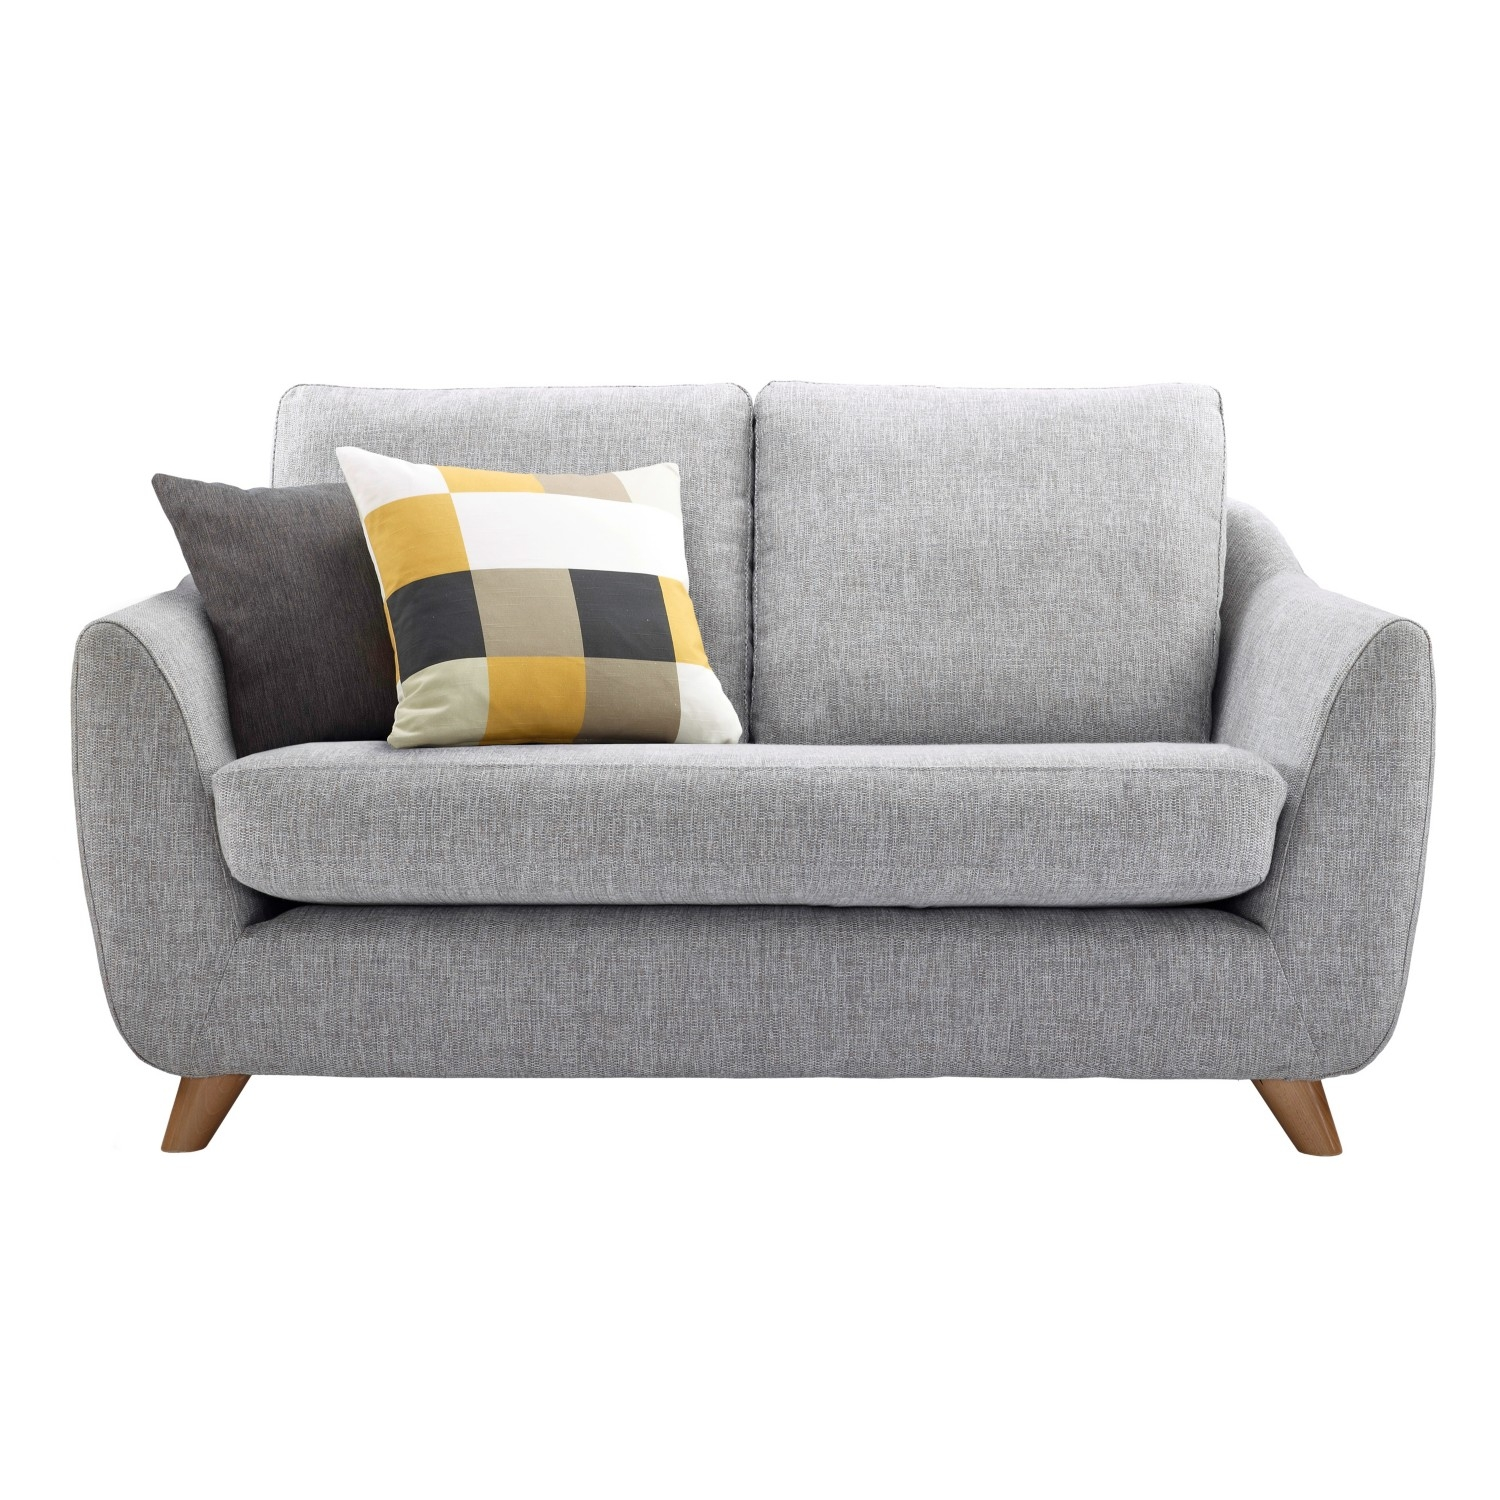 Featured Image of Cool Small Sofas